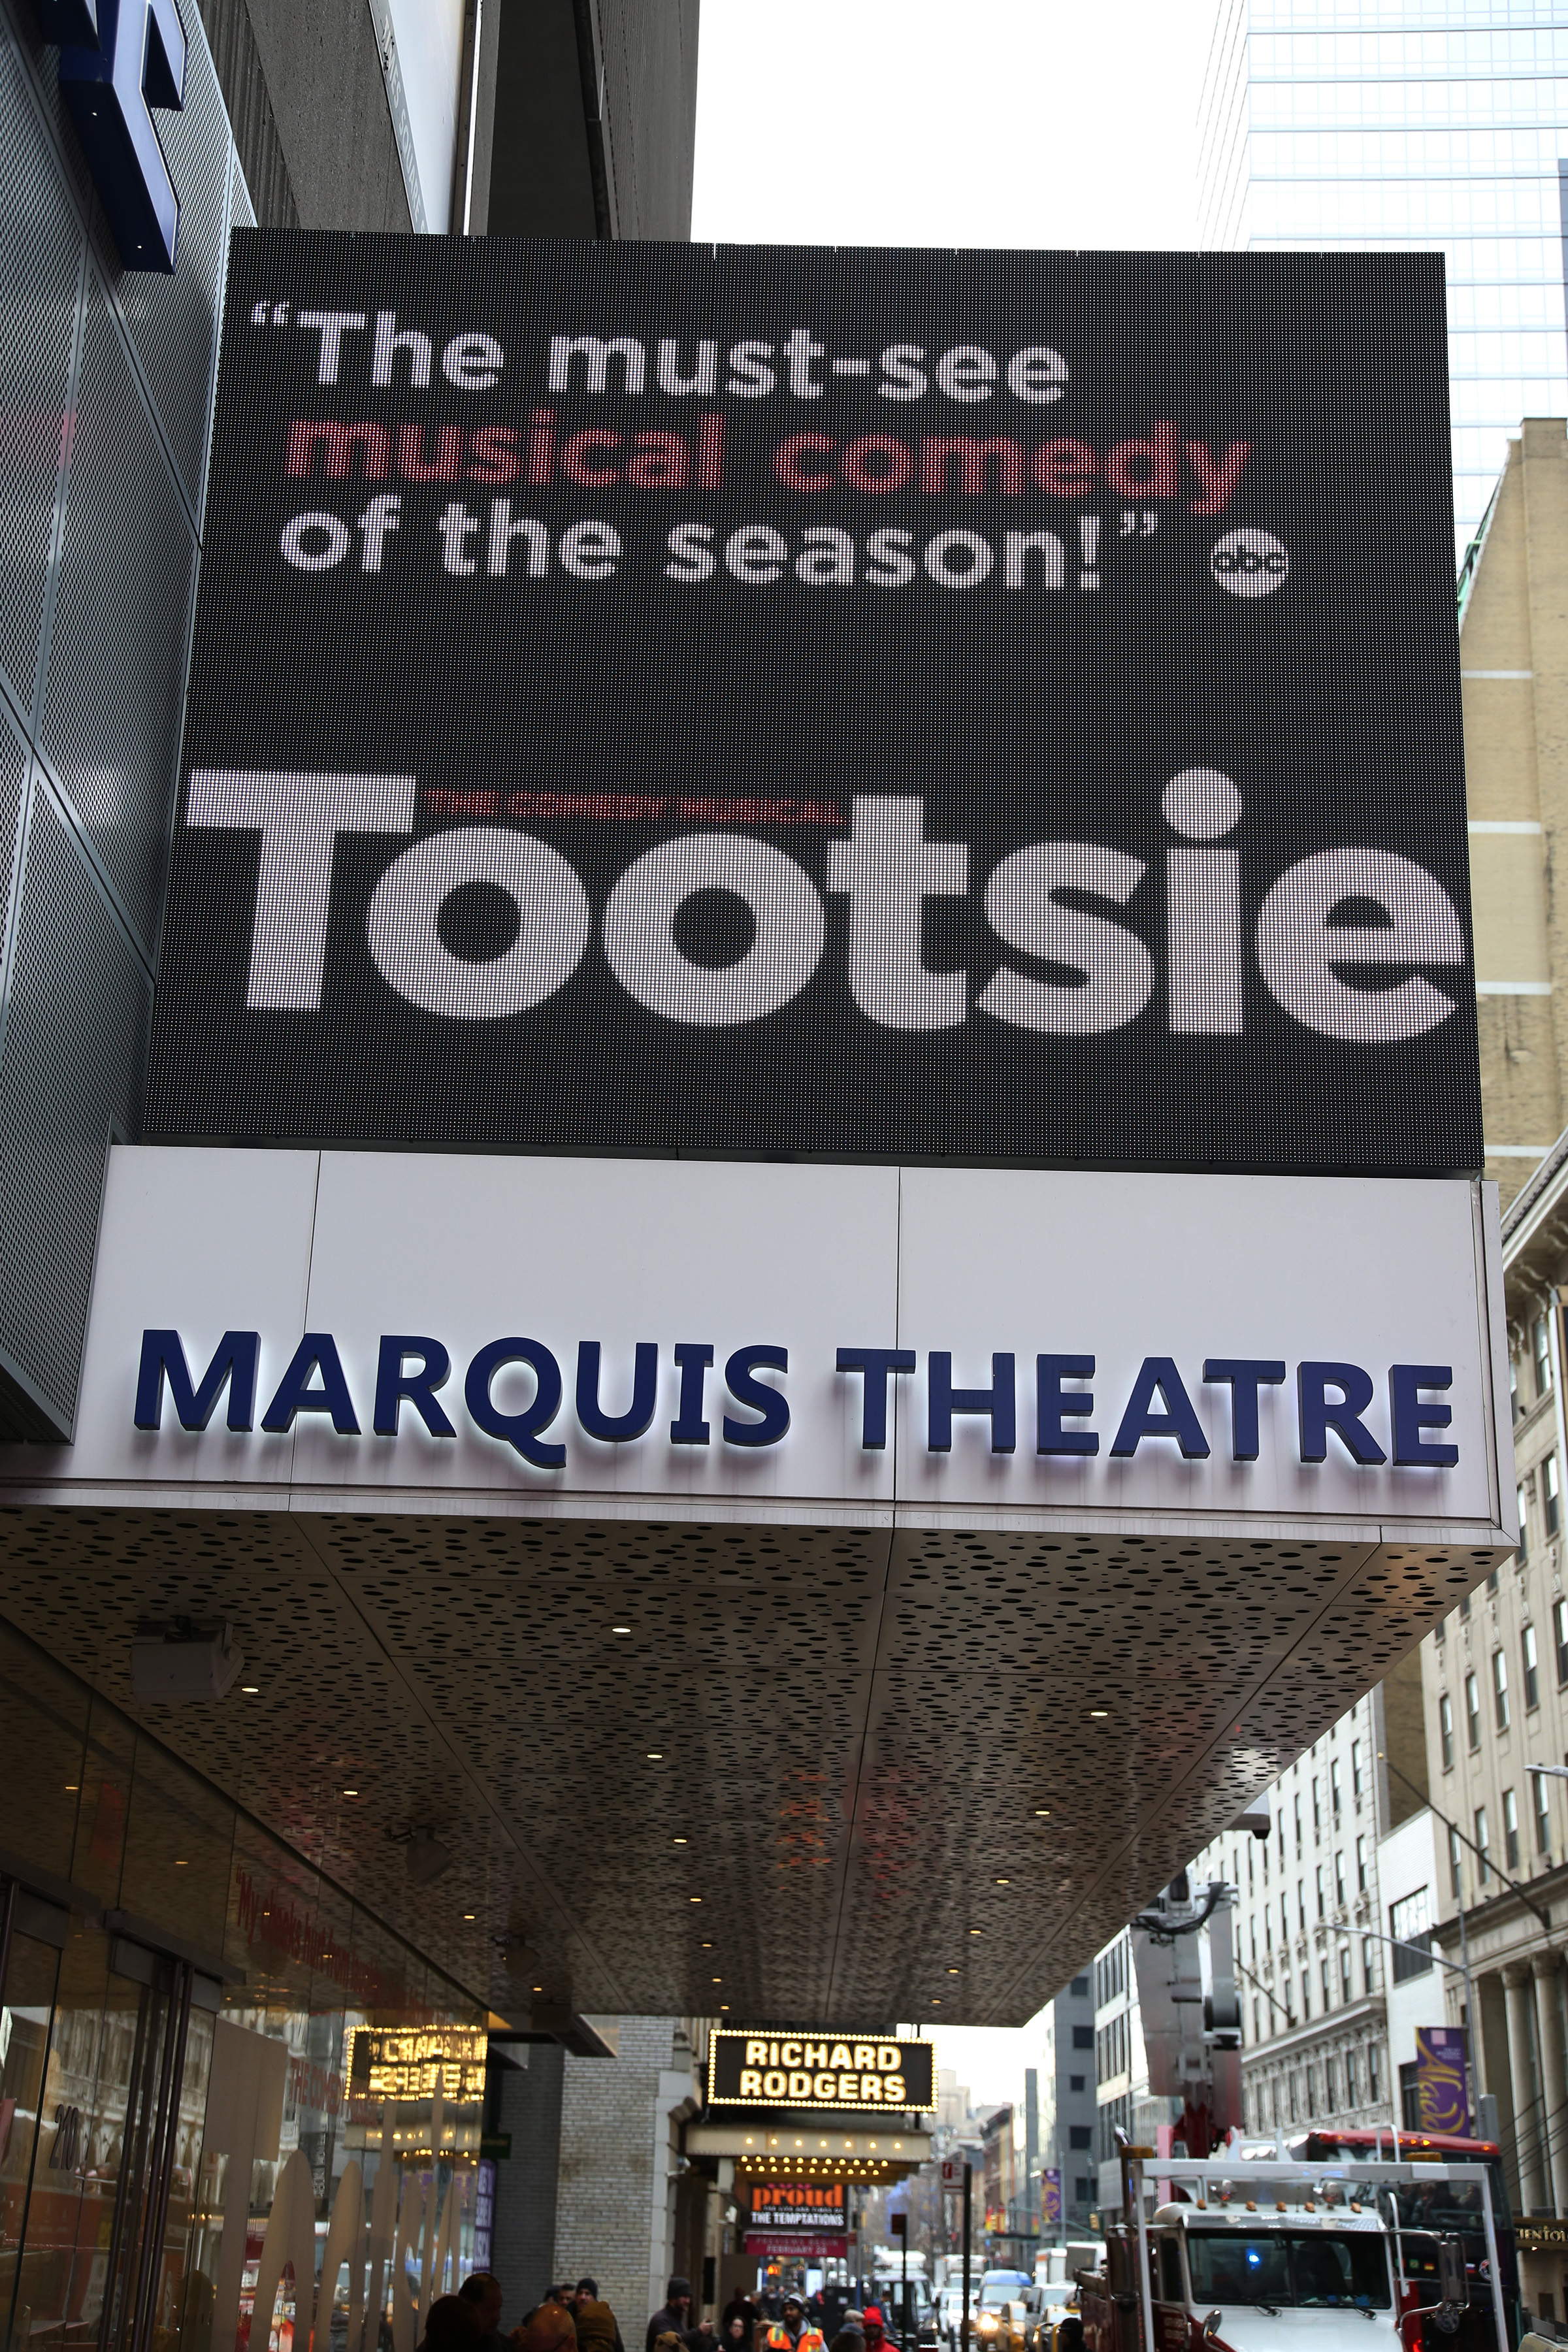 Marquis Theatre (Broadway) - Theater Information Marquee